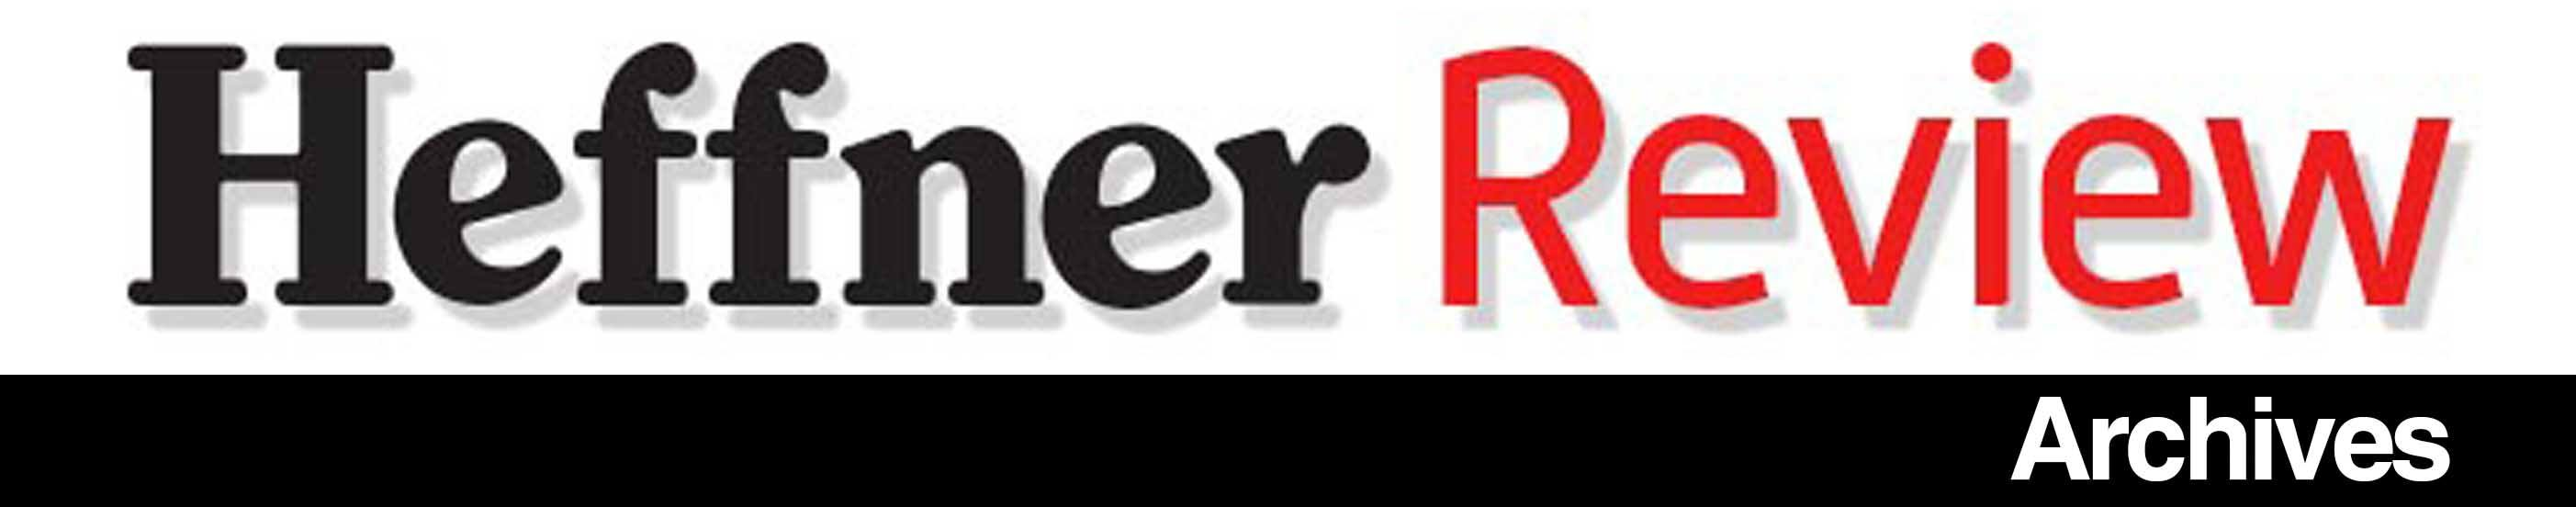 Heffner Review Archives Logo